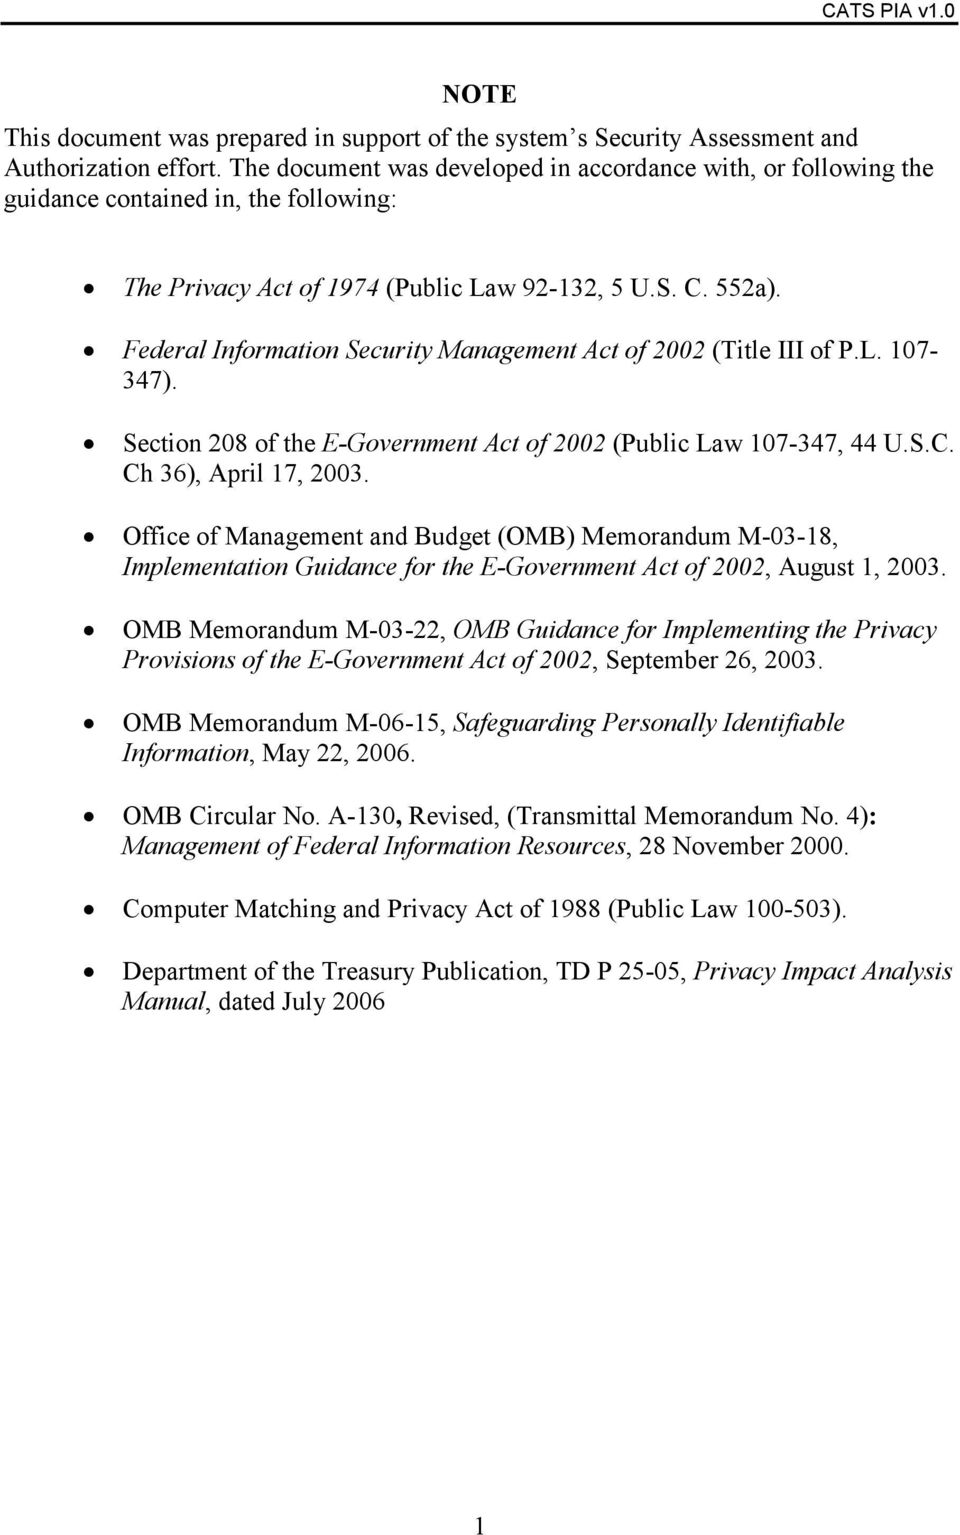 Federal Information Security Management Act of 2002 (Title III of P.L. 107-347). Section 208 of the E-Government Act of 2002 (Public Law 107-347, 44 U.S.C. Ch 36), April 17, 2003.